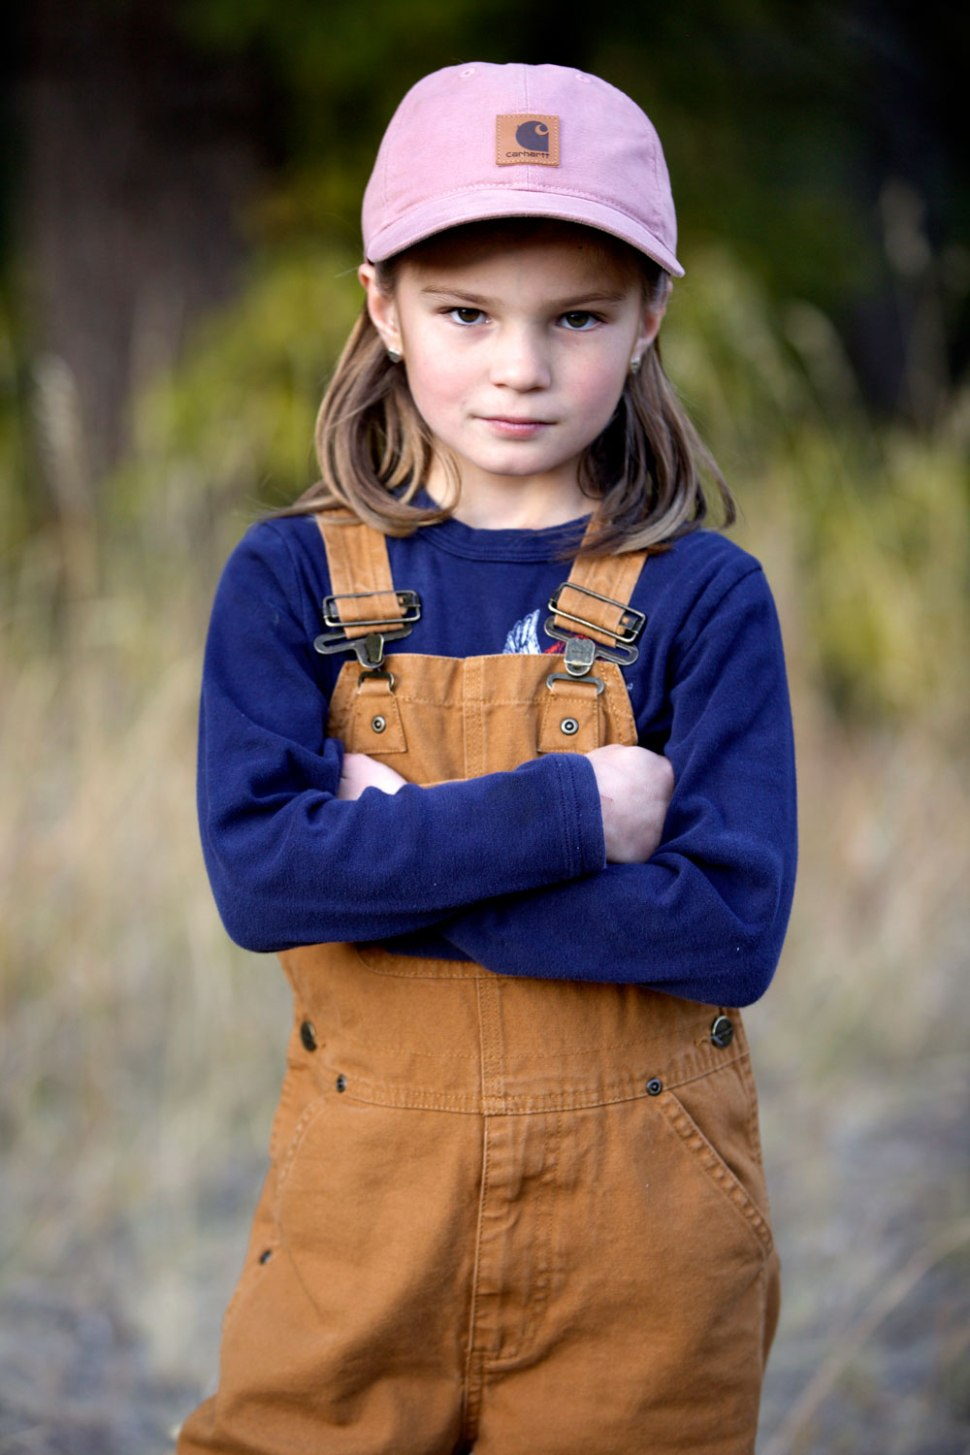 Pint Sized Adventurer, Rowan / Crafted in Carhartt